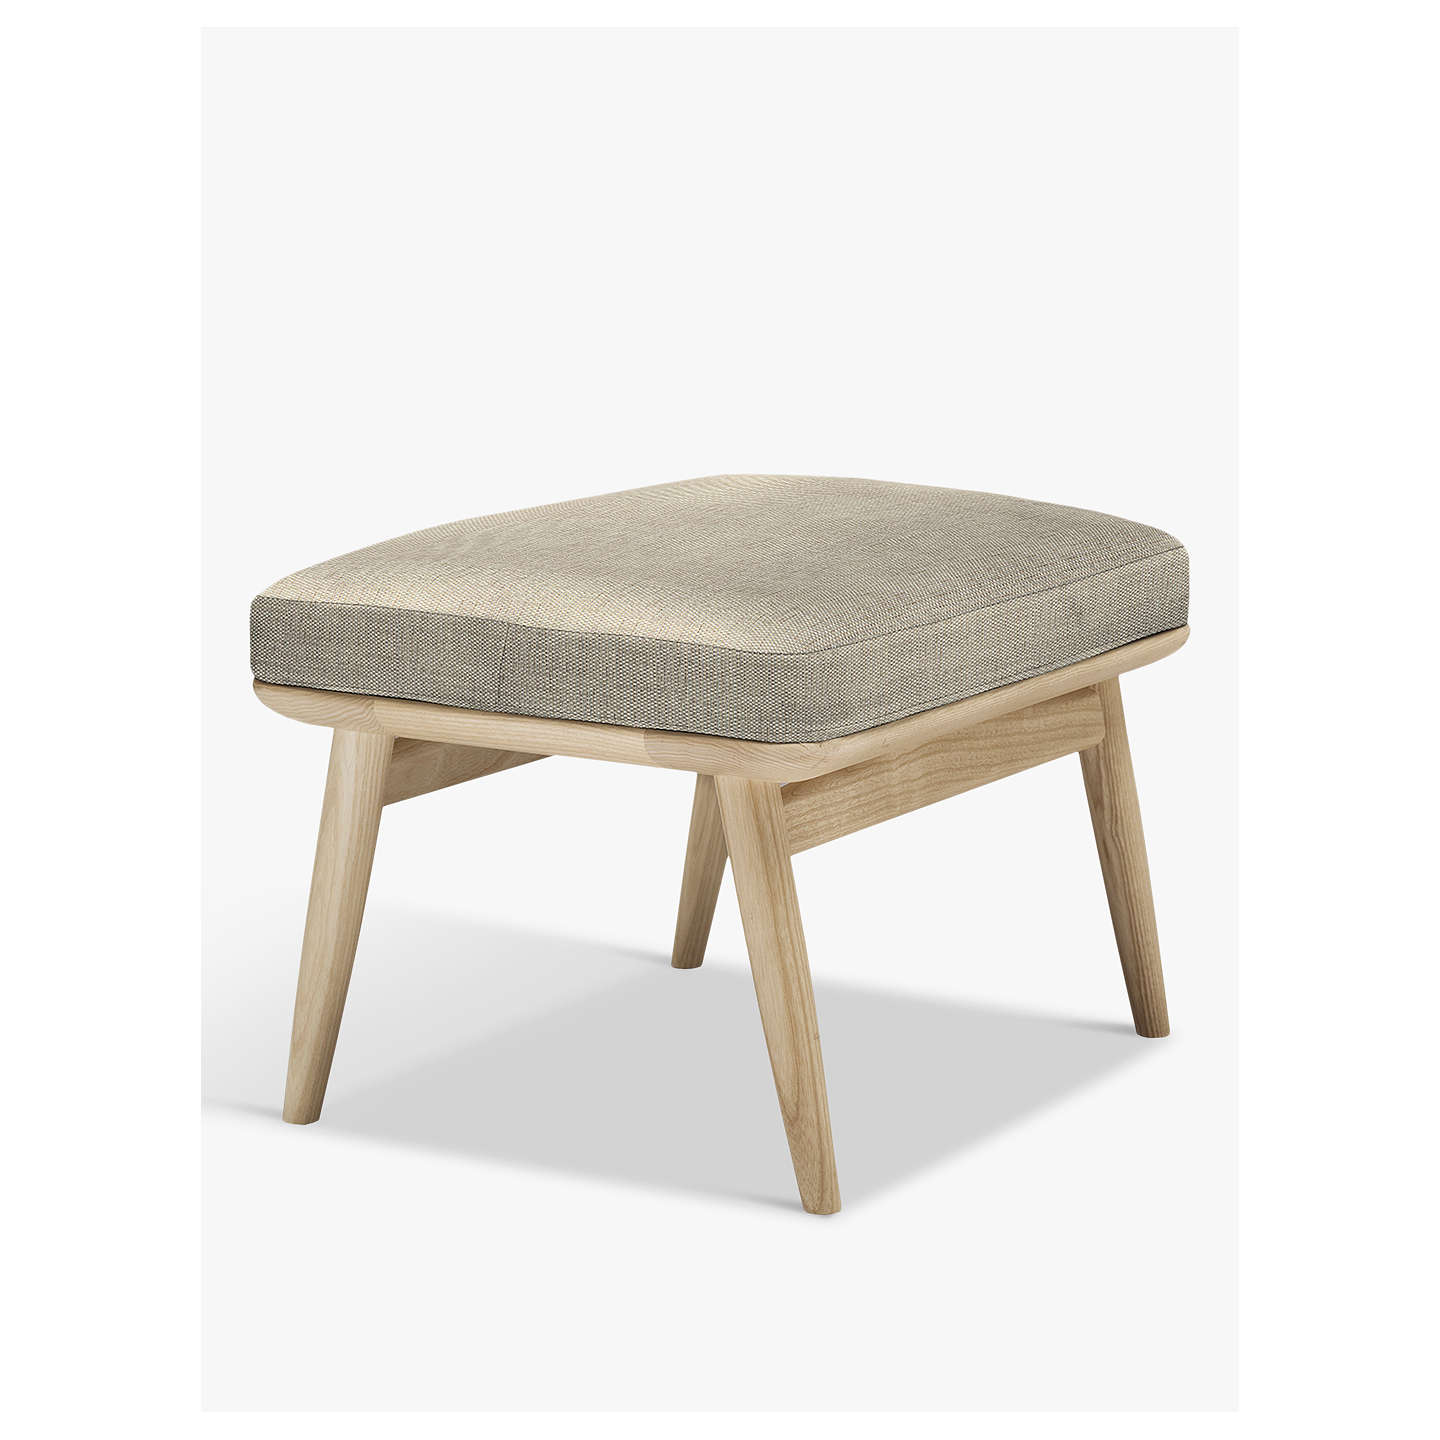 Buyercol for John Lewis Marino Footstool, Maria Oyster Online at johnlewis.com